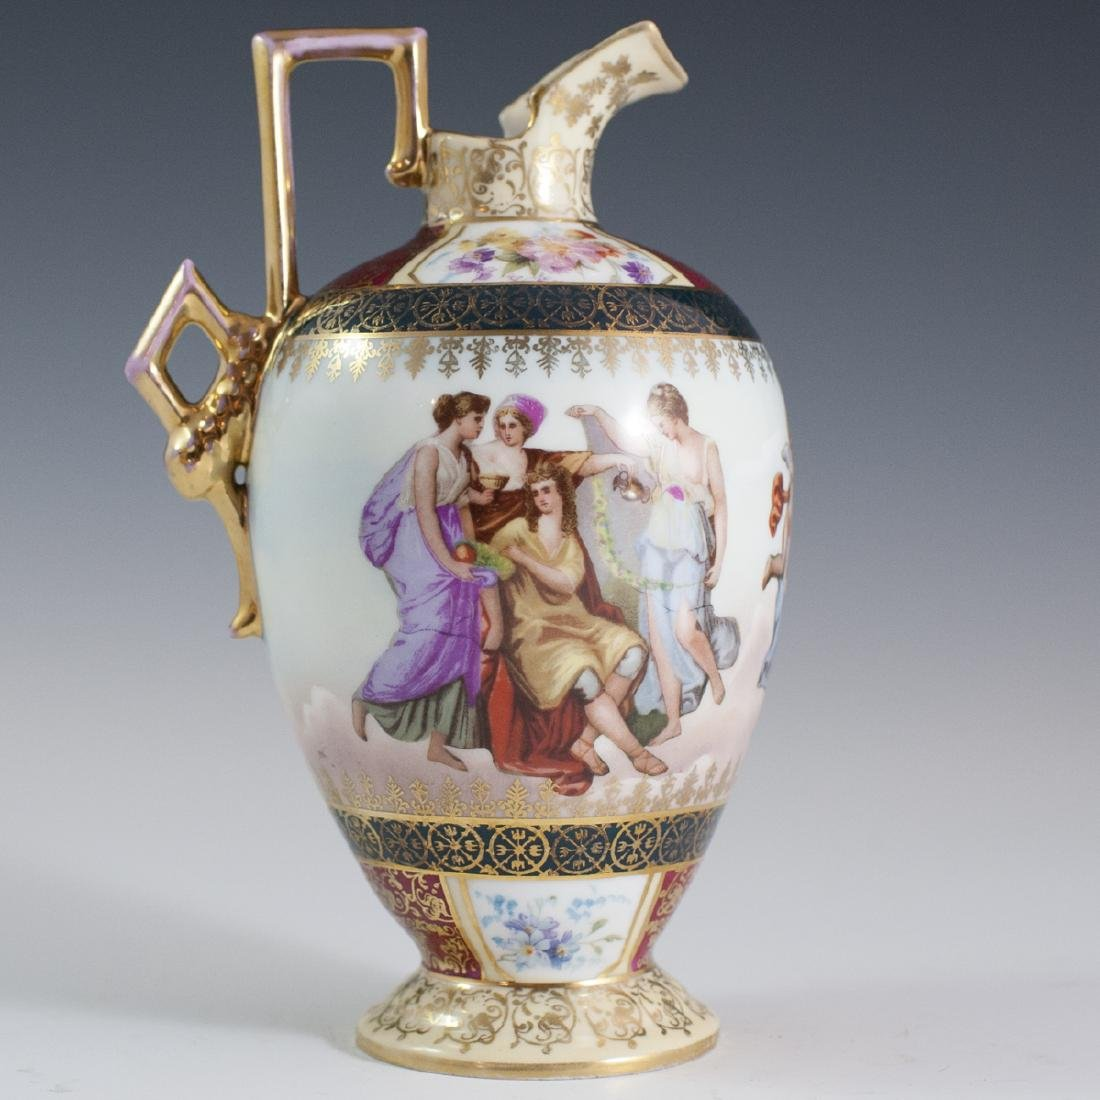 Royal Vienna Porcelain Ewer - 2